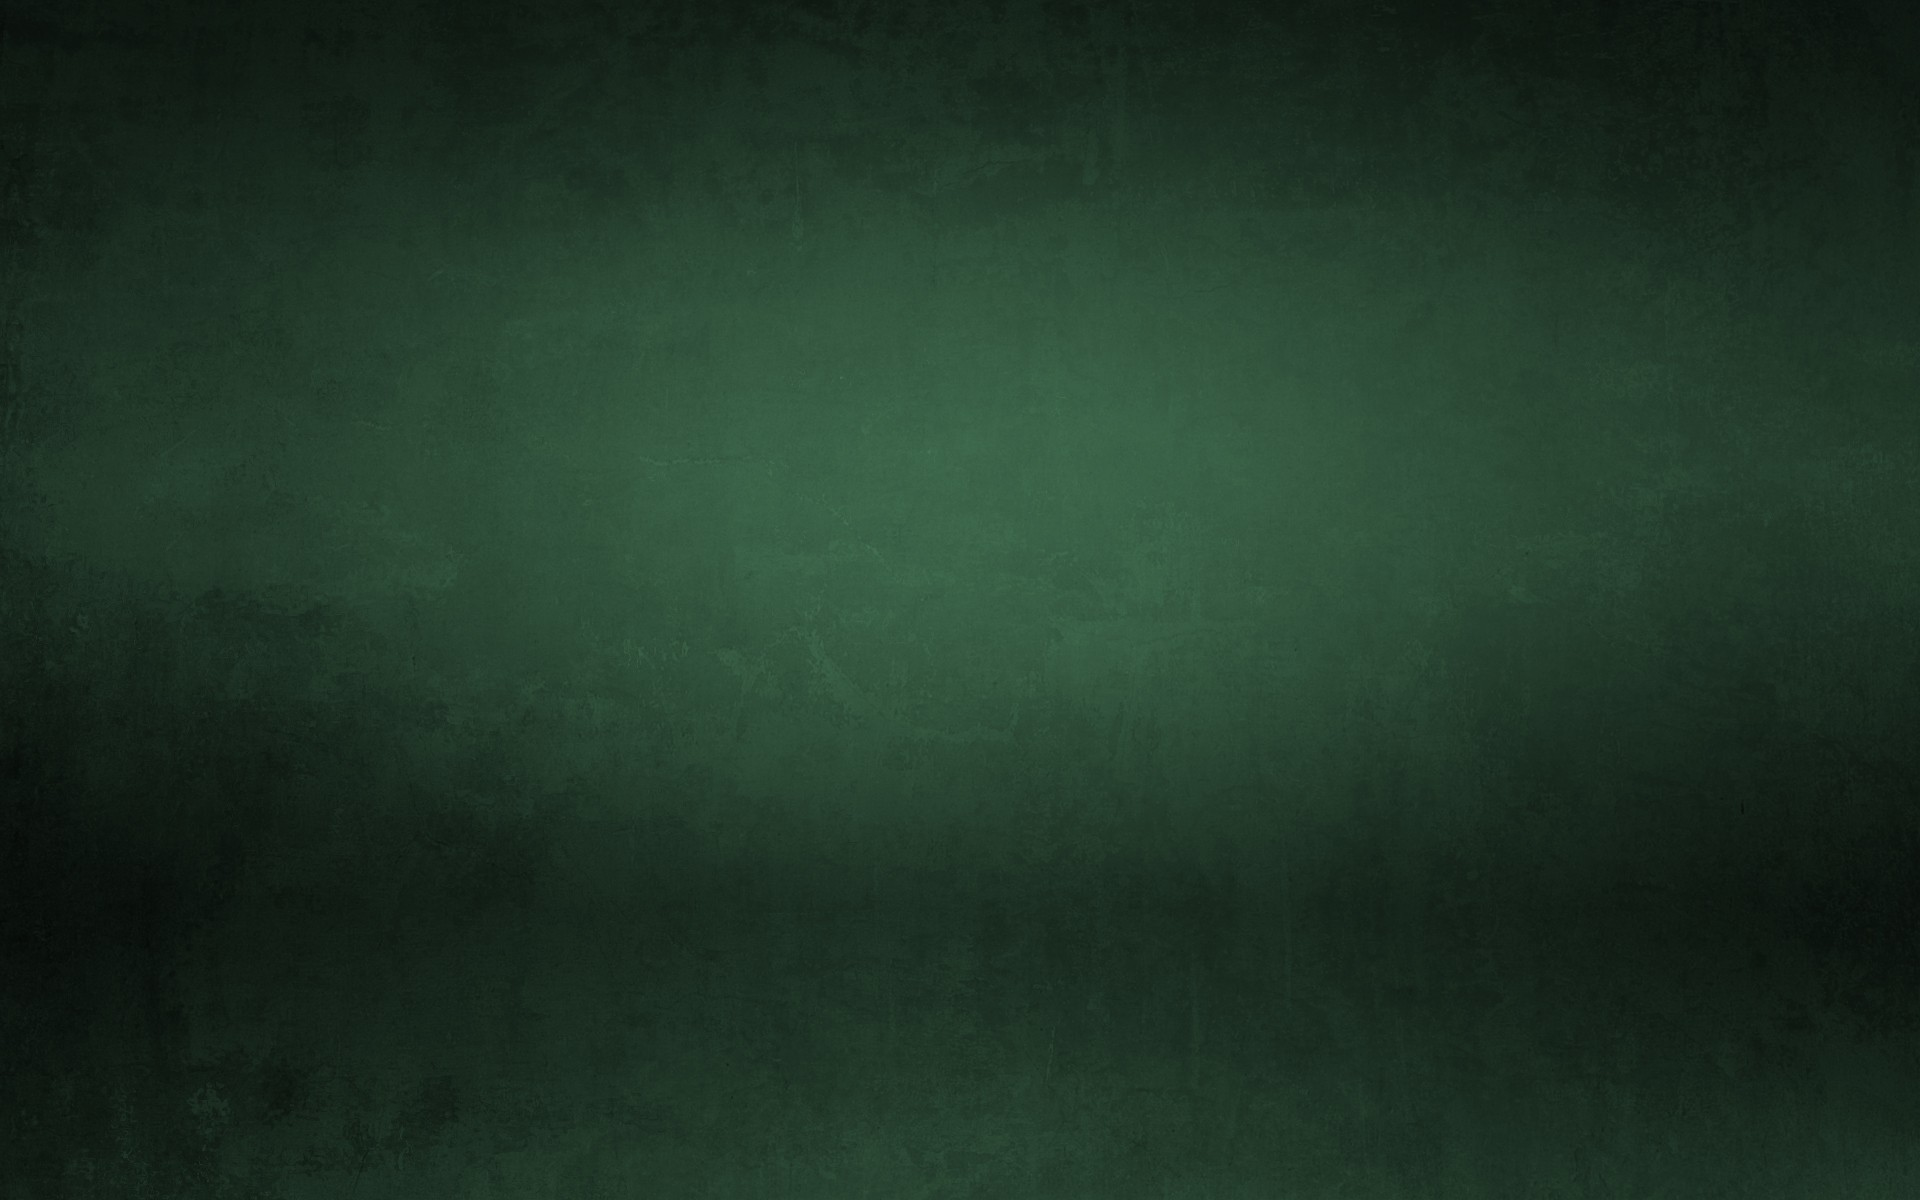 Dark Green Background Wallpaper - WallpaperSafari